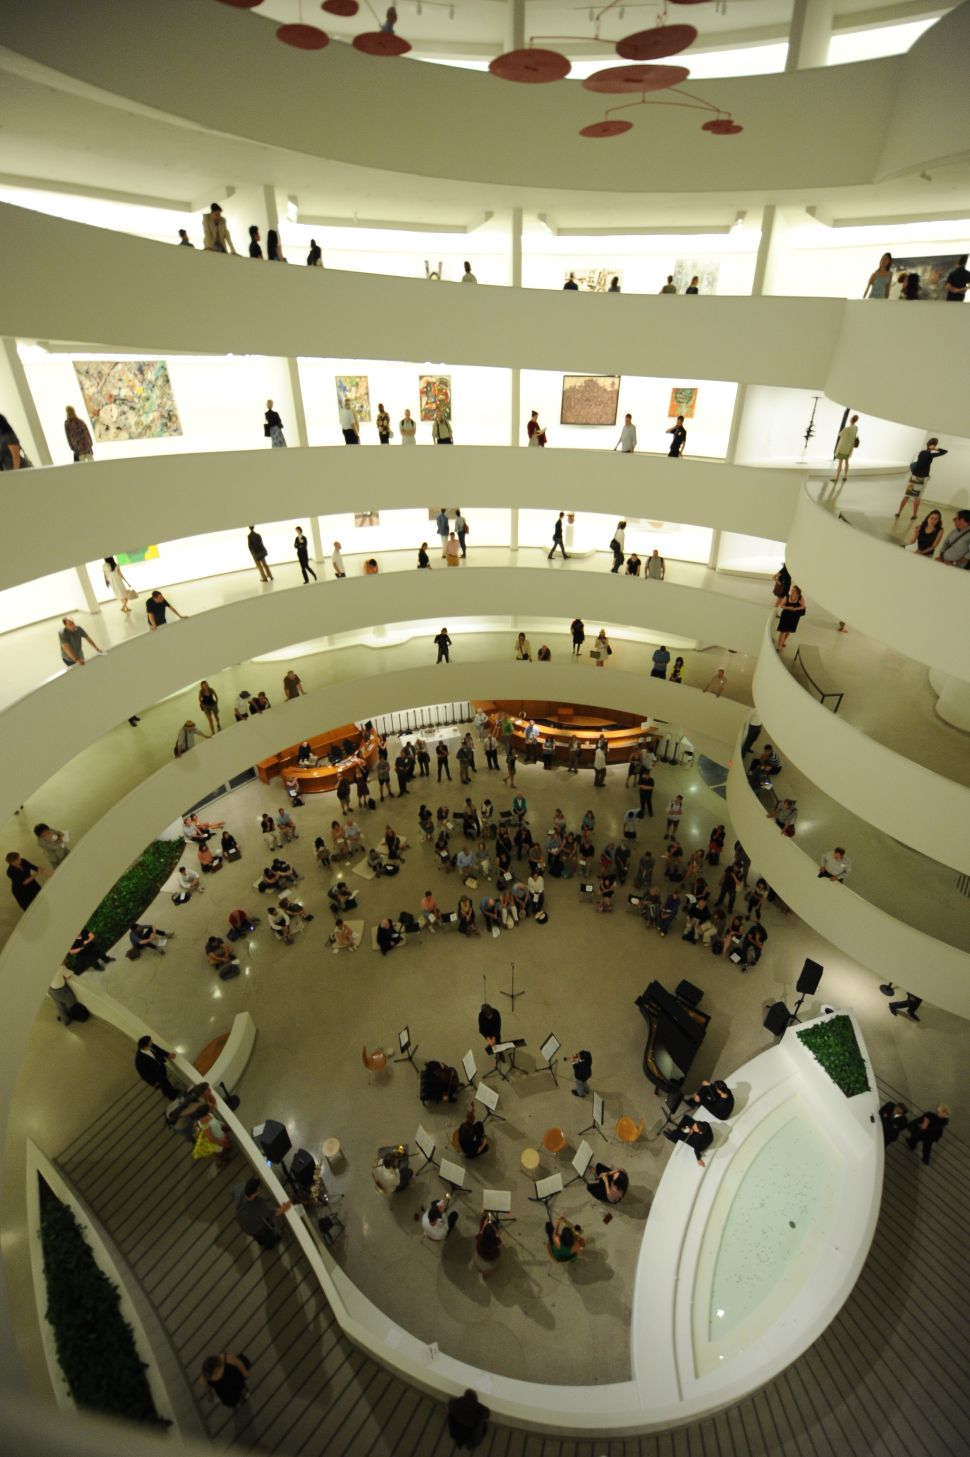 Inherent Abstraction: Mid-Century Modernism in Music and Art at the Guggenheim